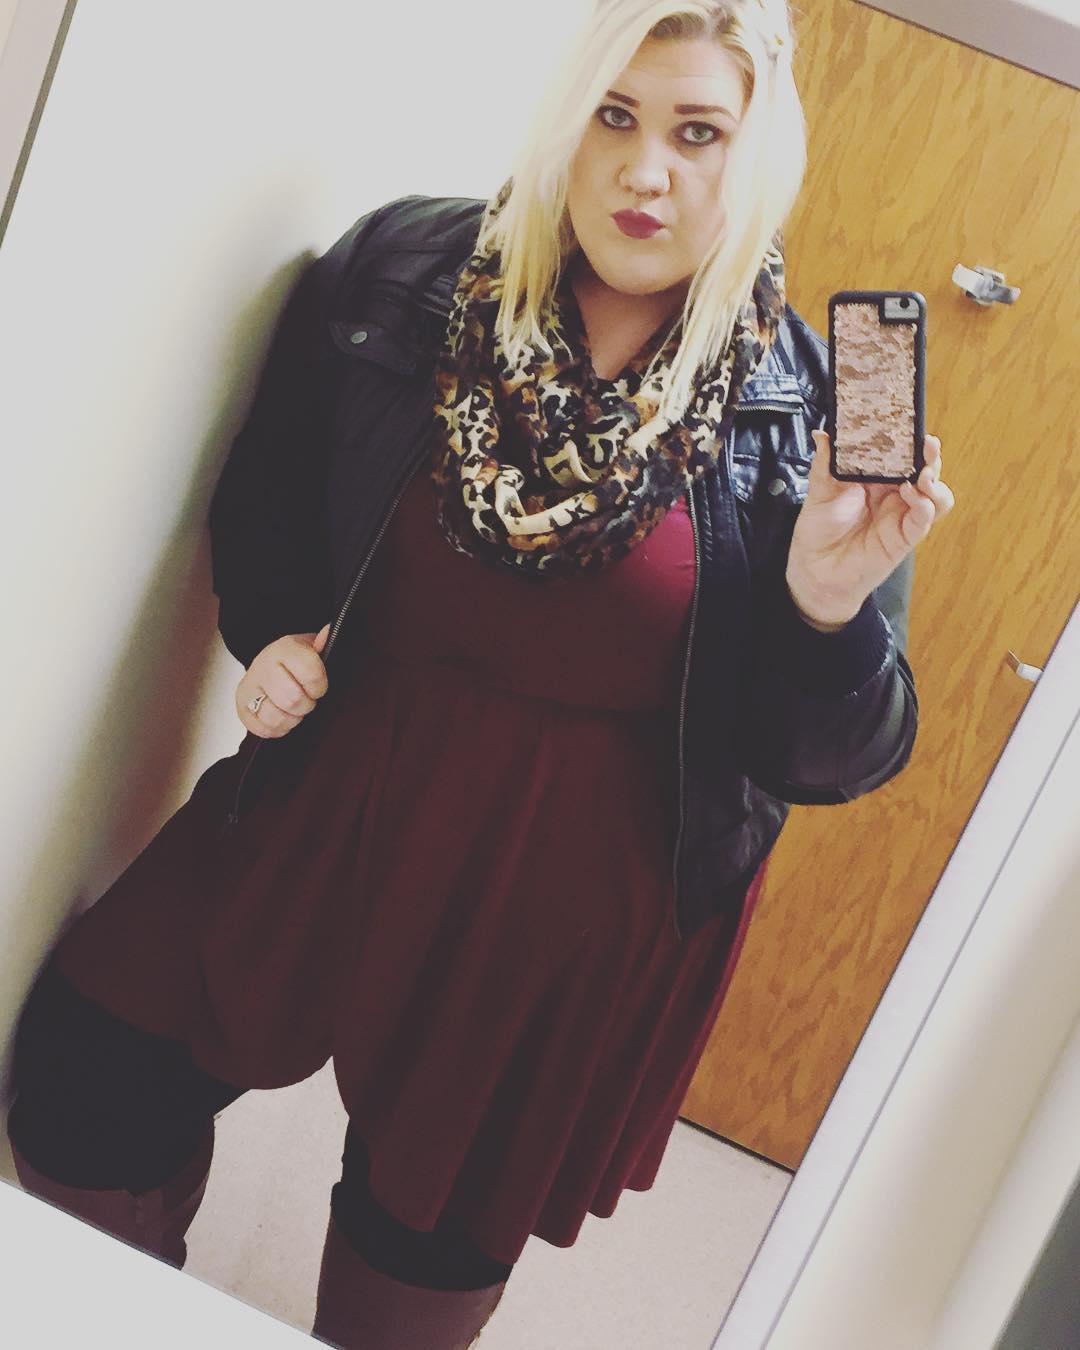 Stylish Maroon Dress With Leather Jacket And Leopard Scarf